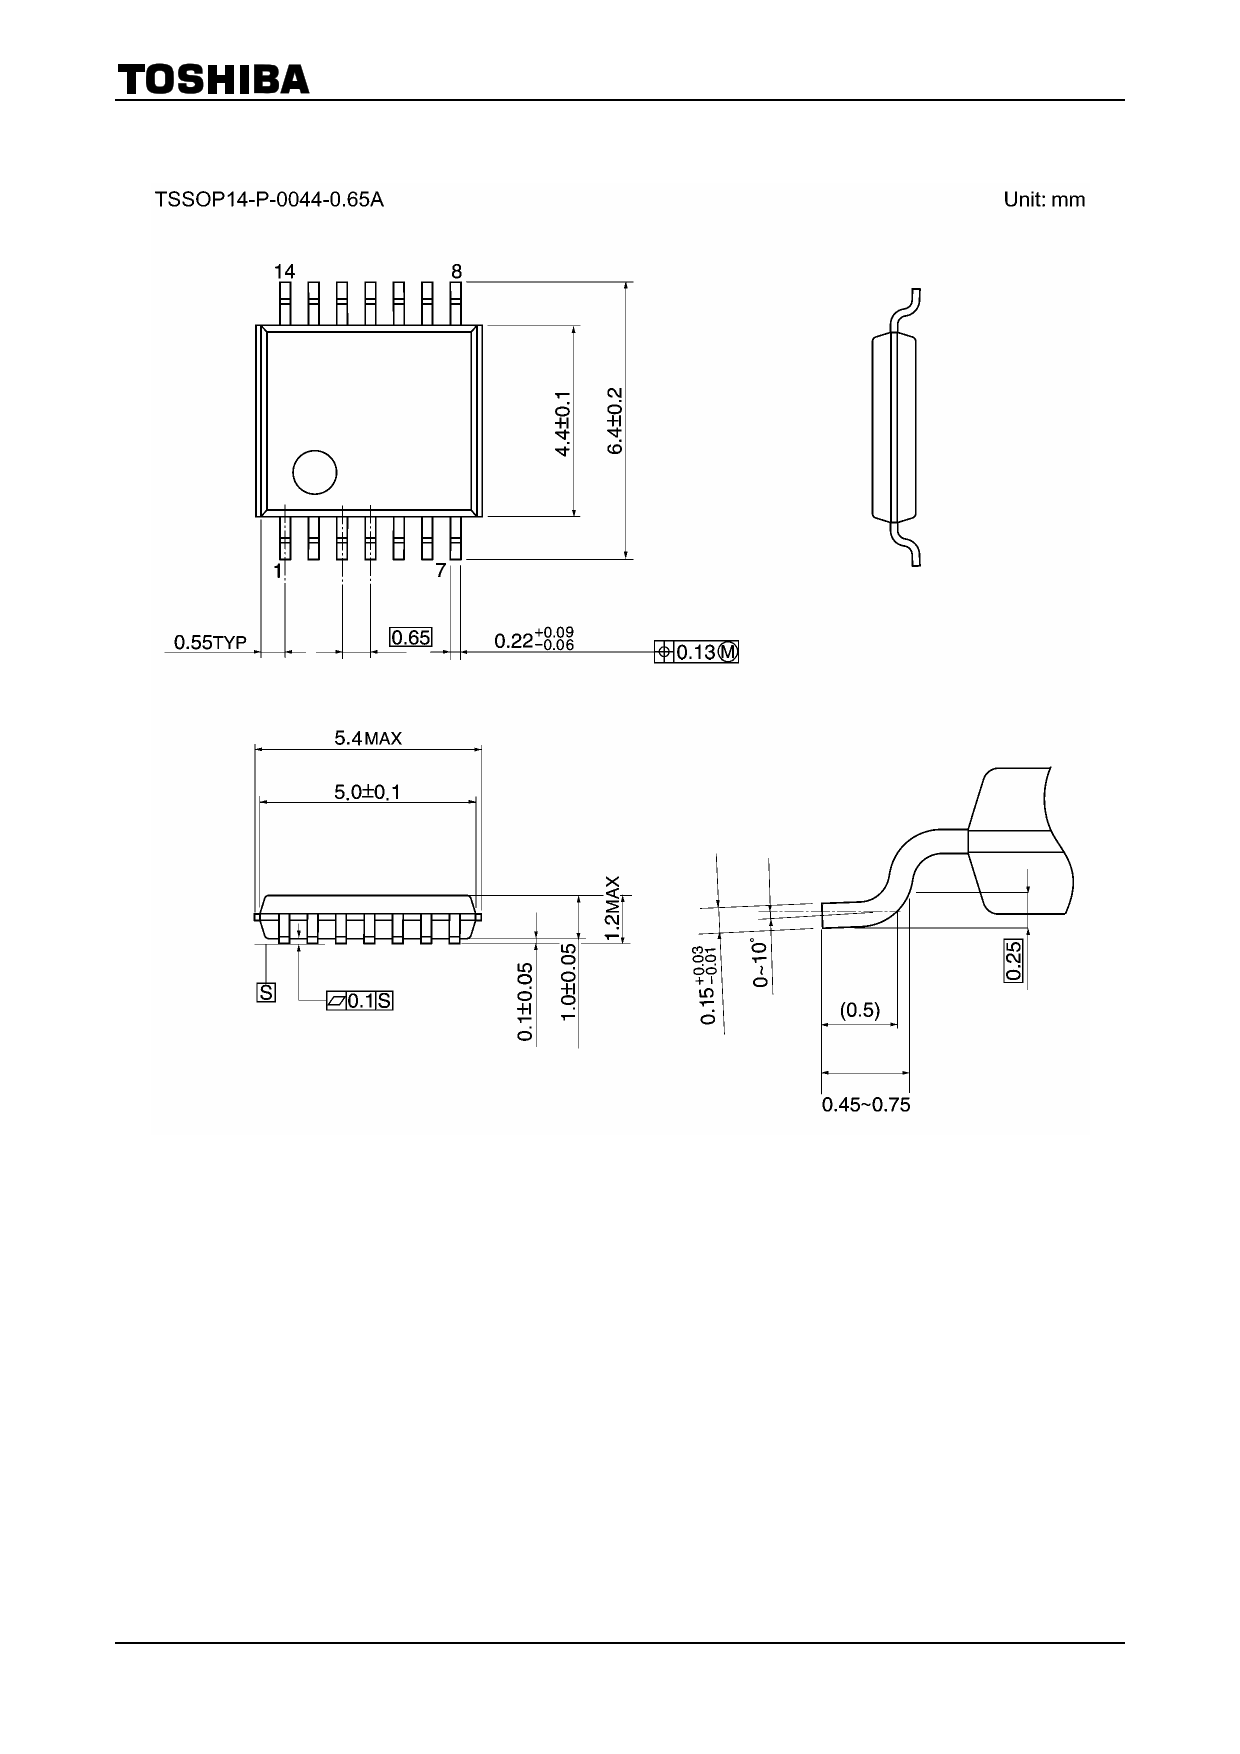 74ACT74P diode, scr